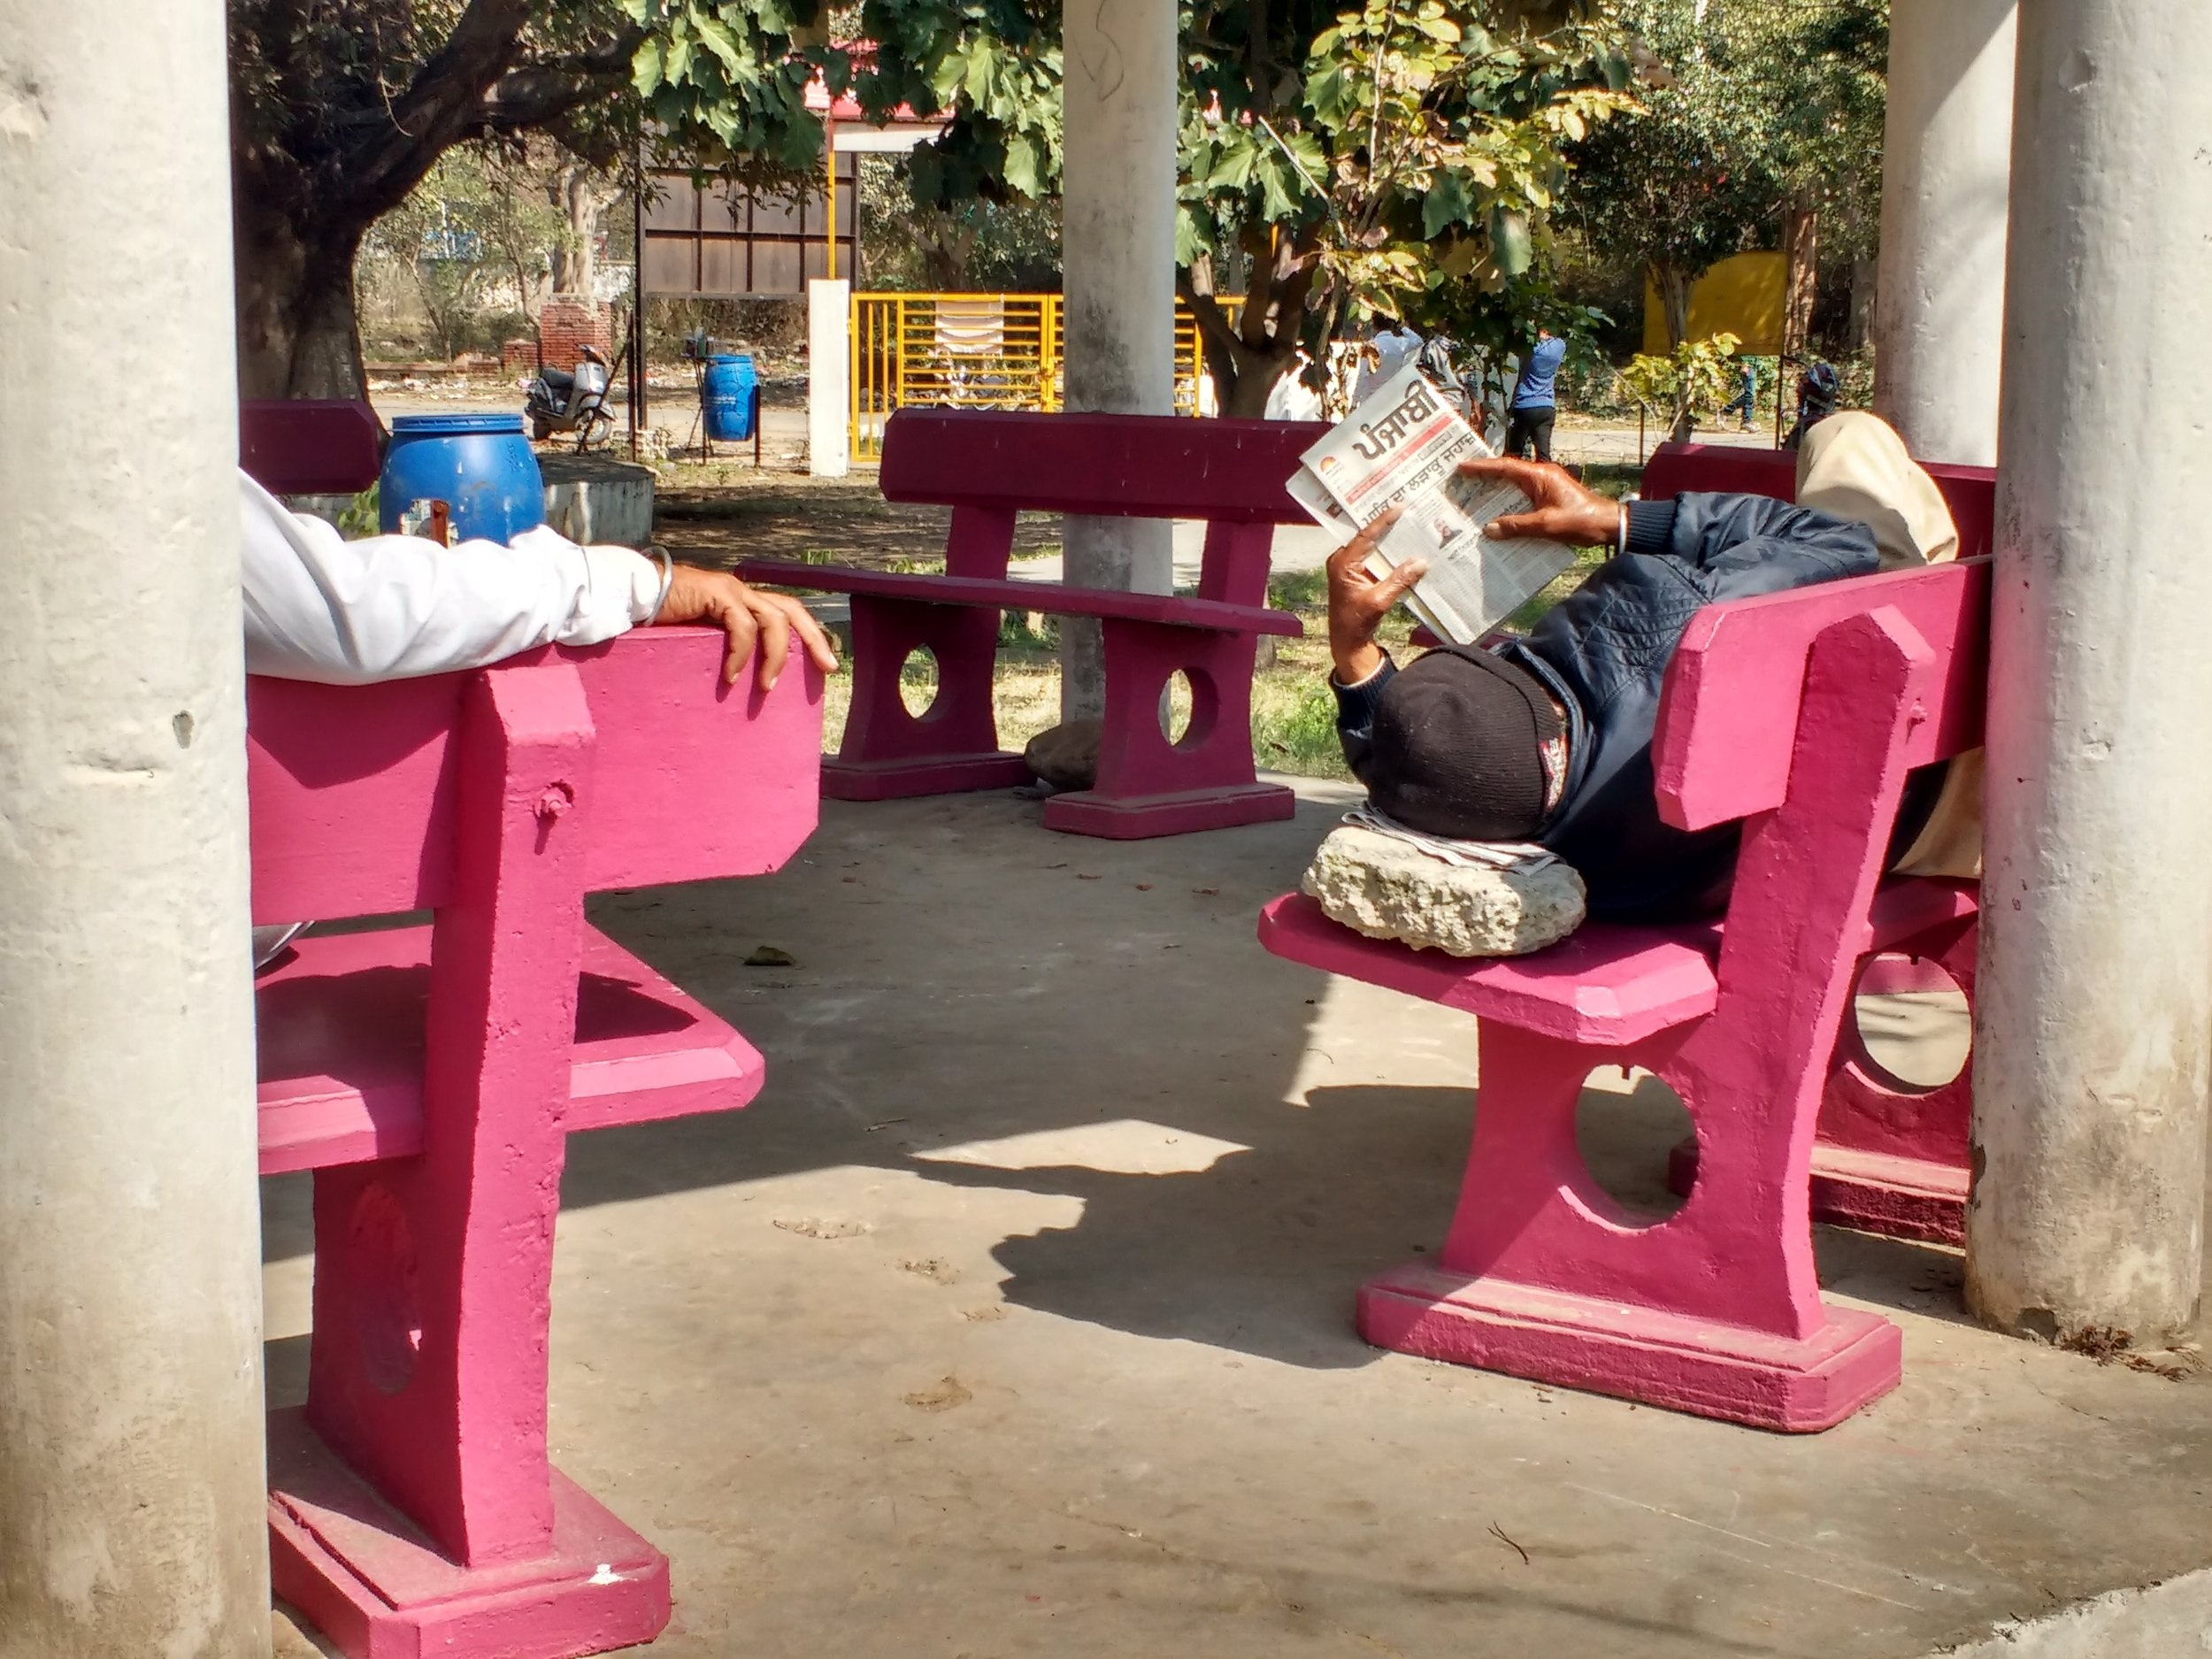 For many of the senior citizens adjoining the nearby colonies, the park area provides an important leisure place